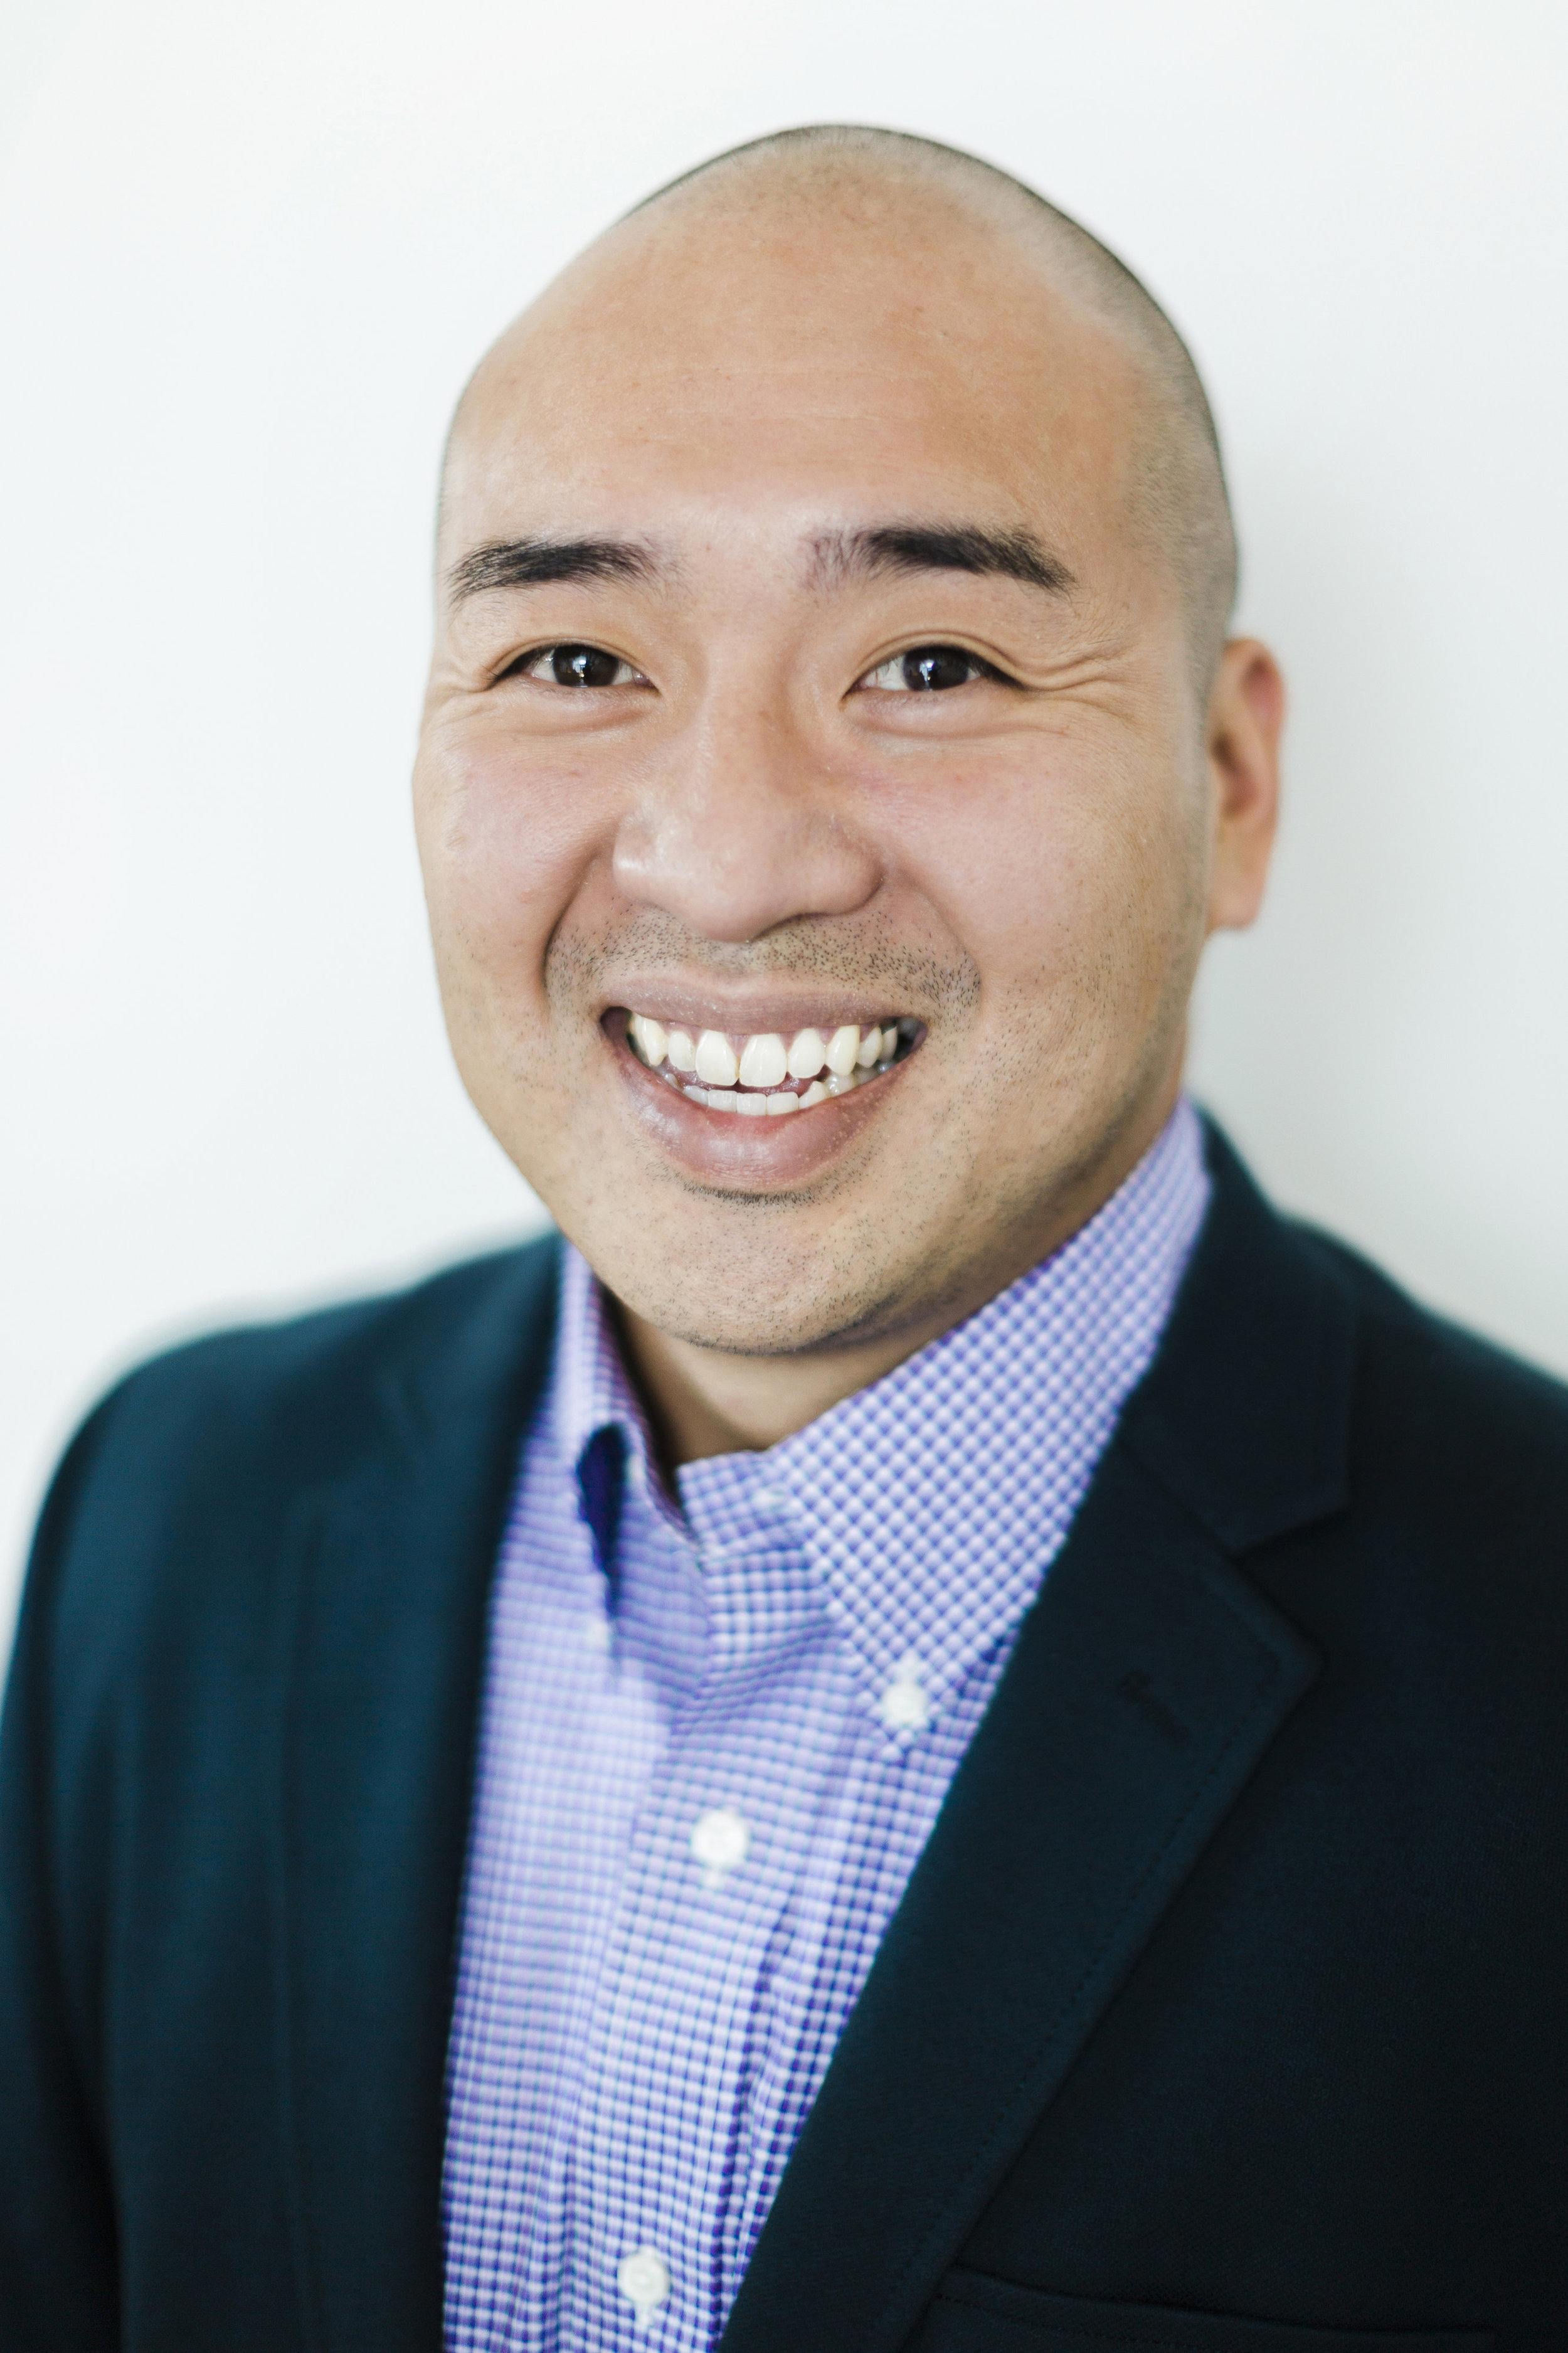 <p><strong>Shawn Nguyen</strong>Party Starter!<a href=/shawn-nguyen>Meet Shawn →</a></p>